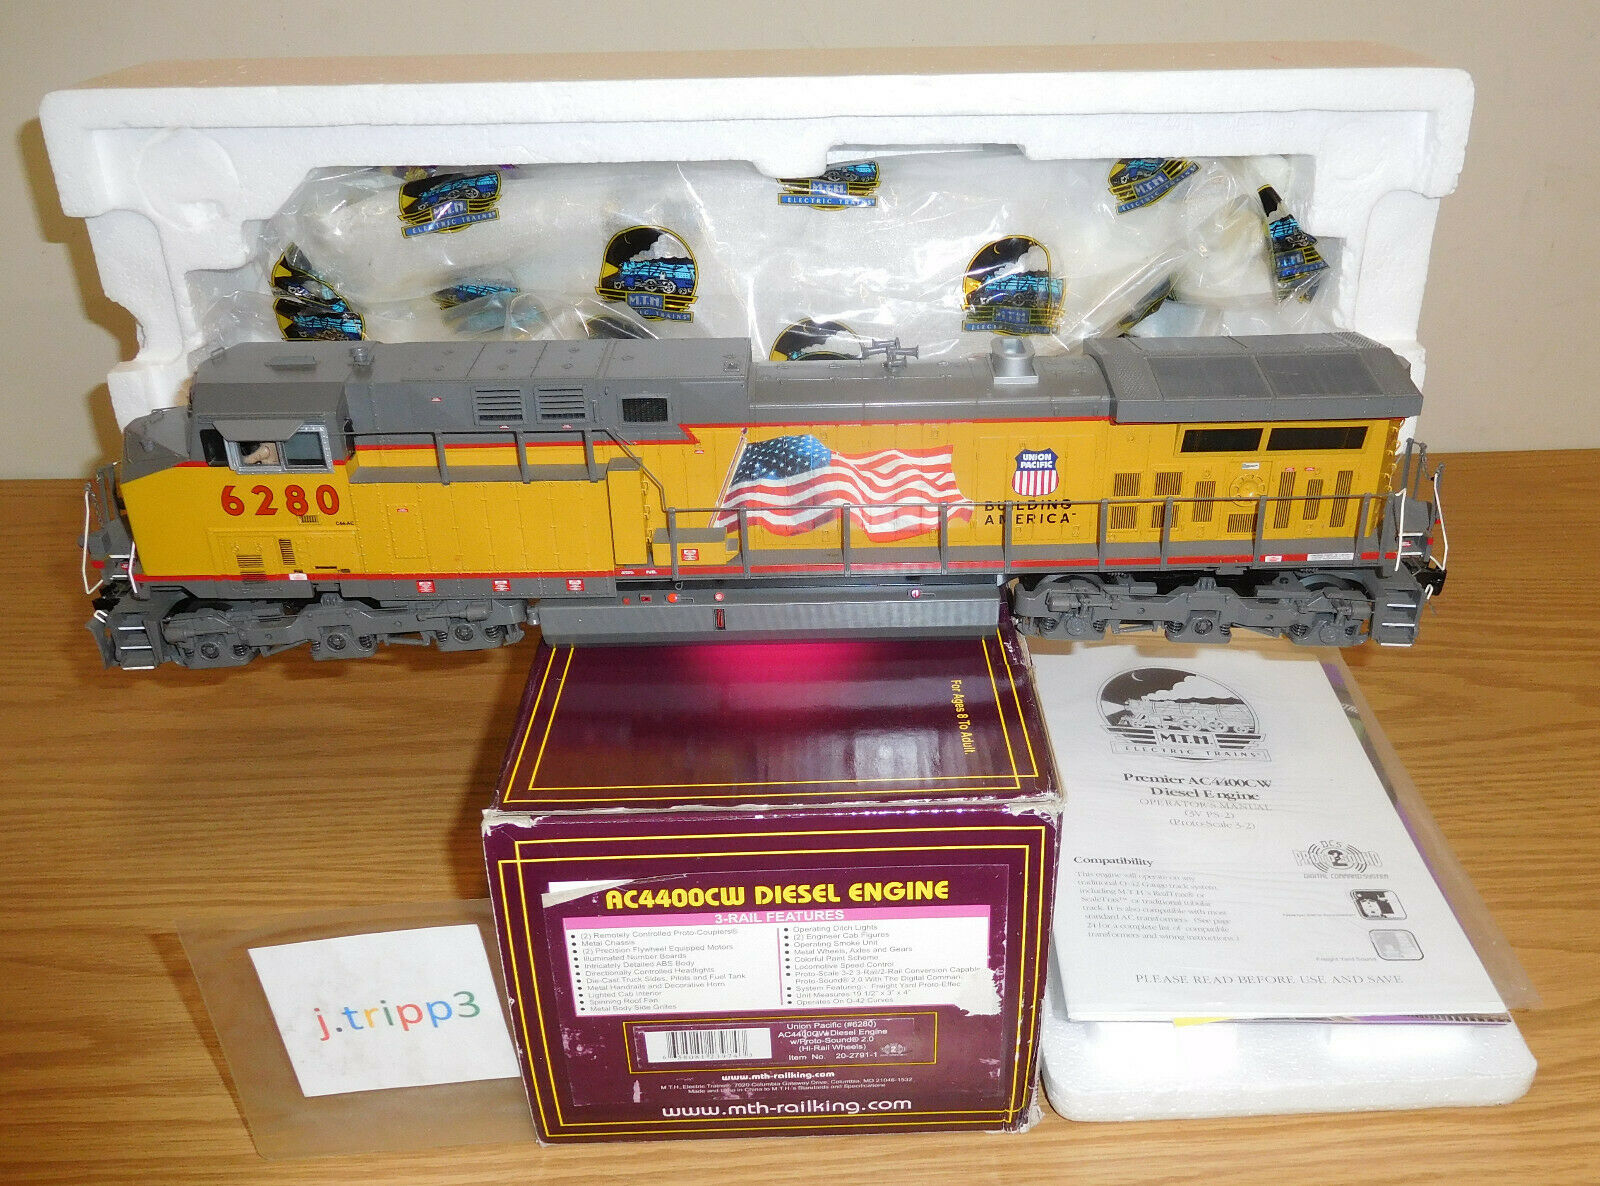 Mth Union Pacific up ac440ocw Diesel Engine o